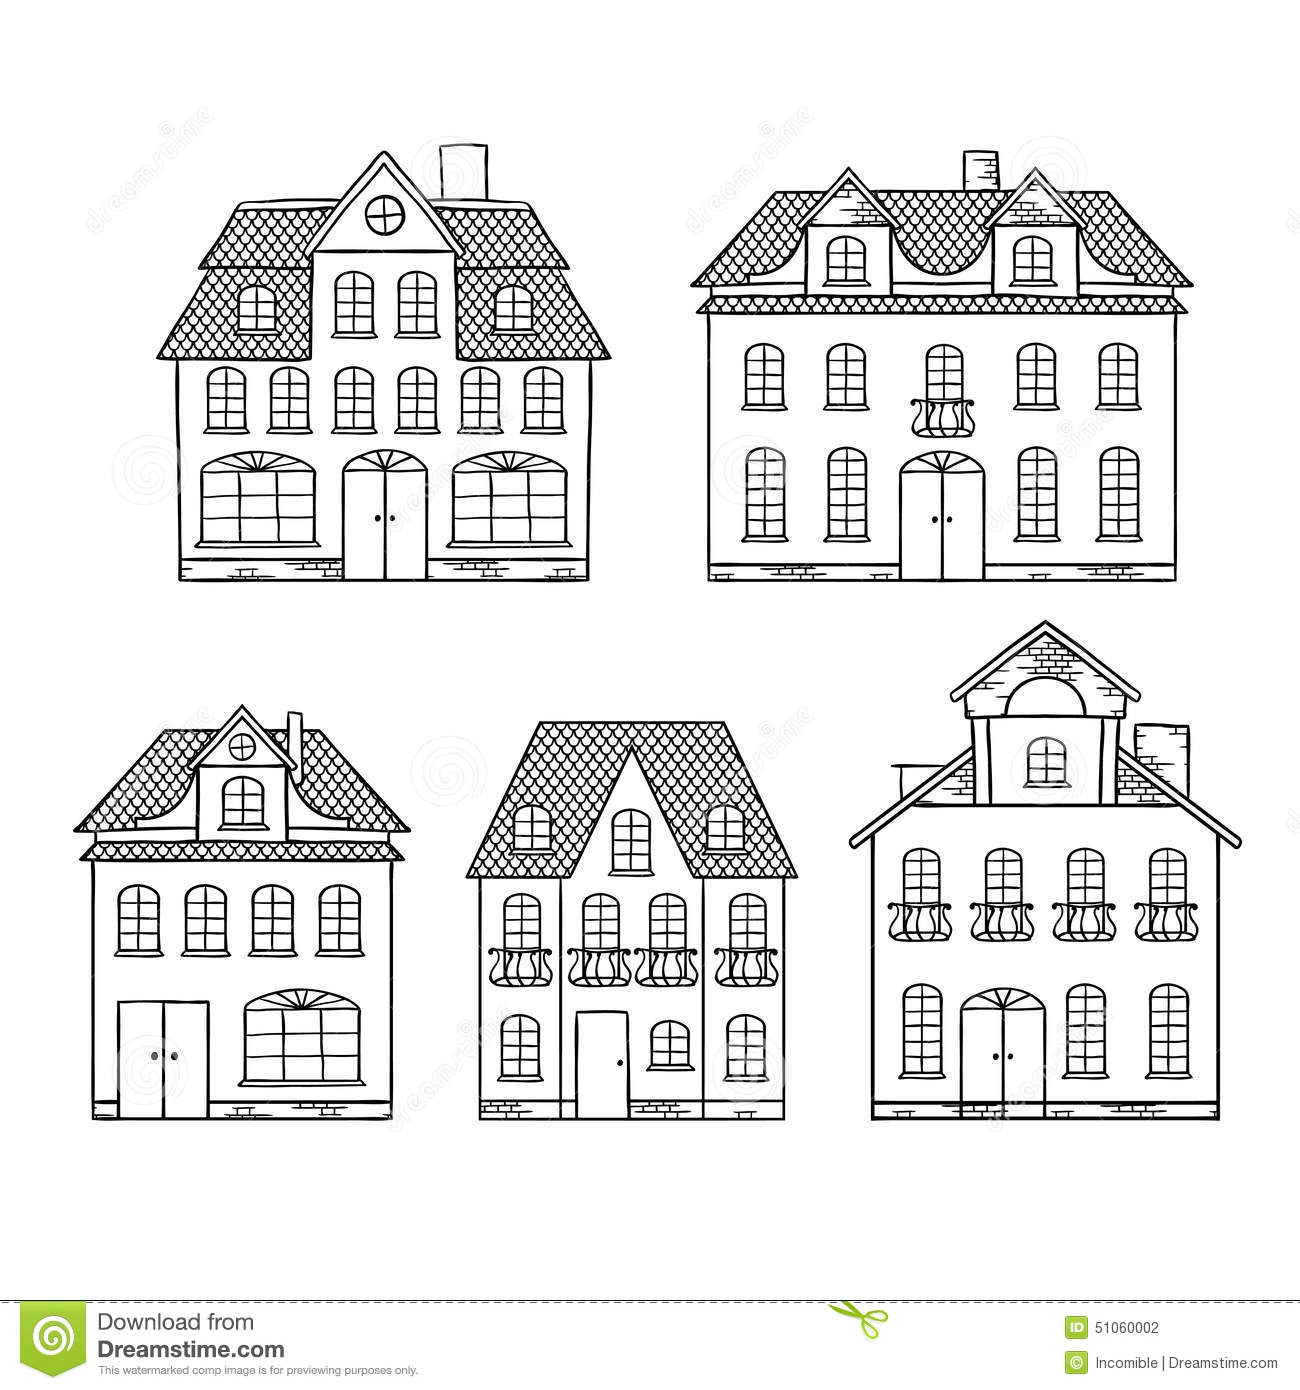 Maisons de dessin d 39 expert d 39 isolement illustration de for Easy to draw mansion